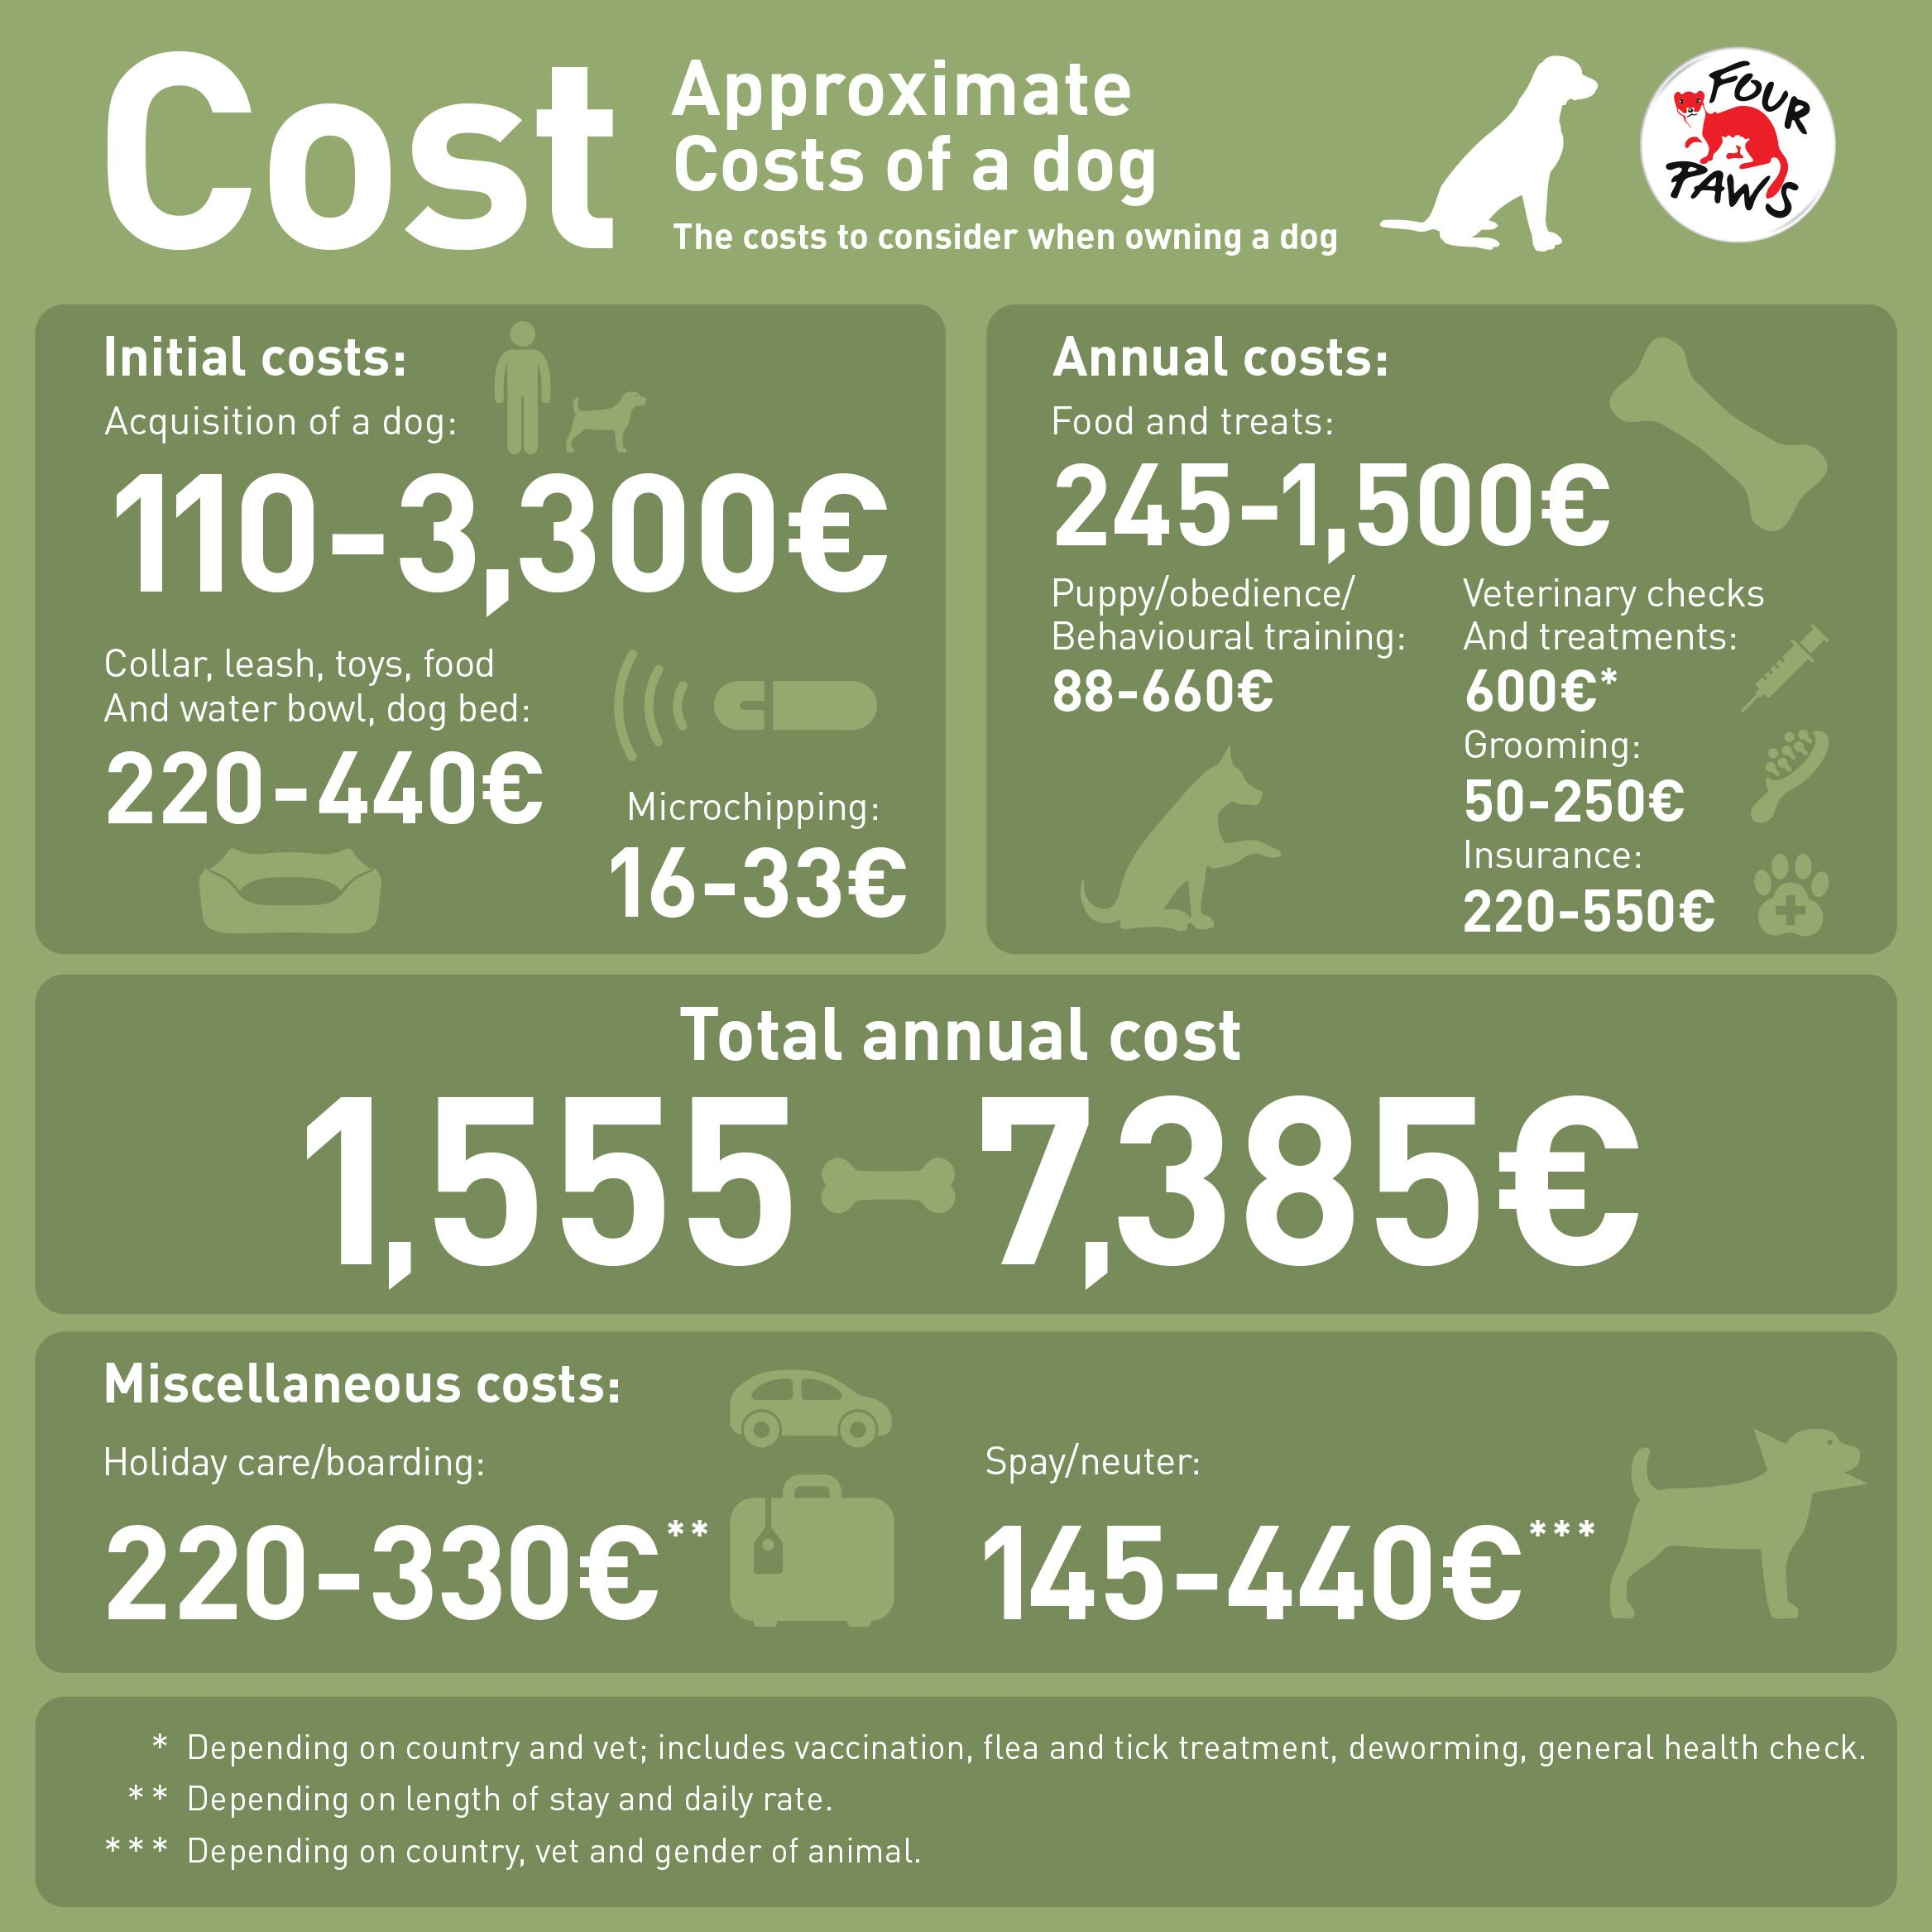 Approximate costs of a dog